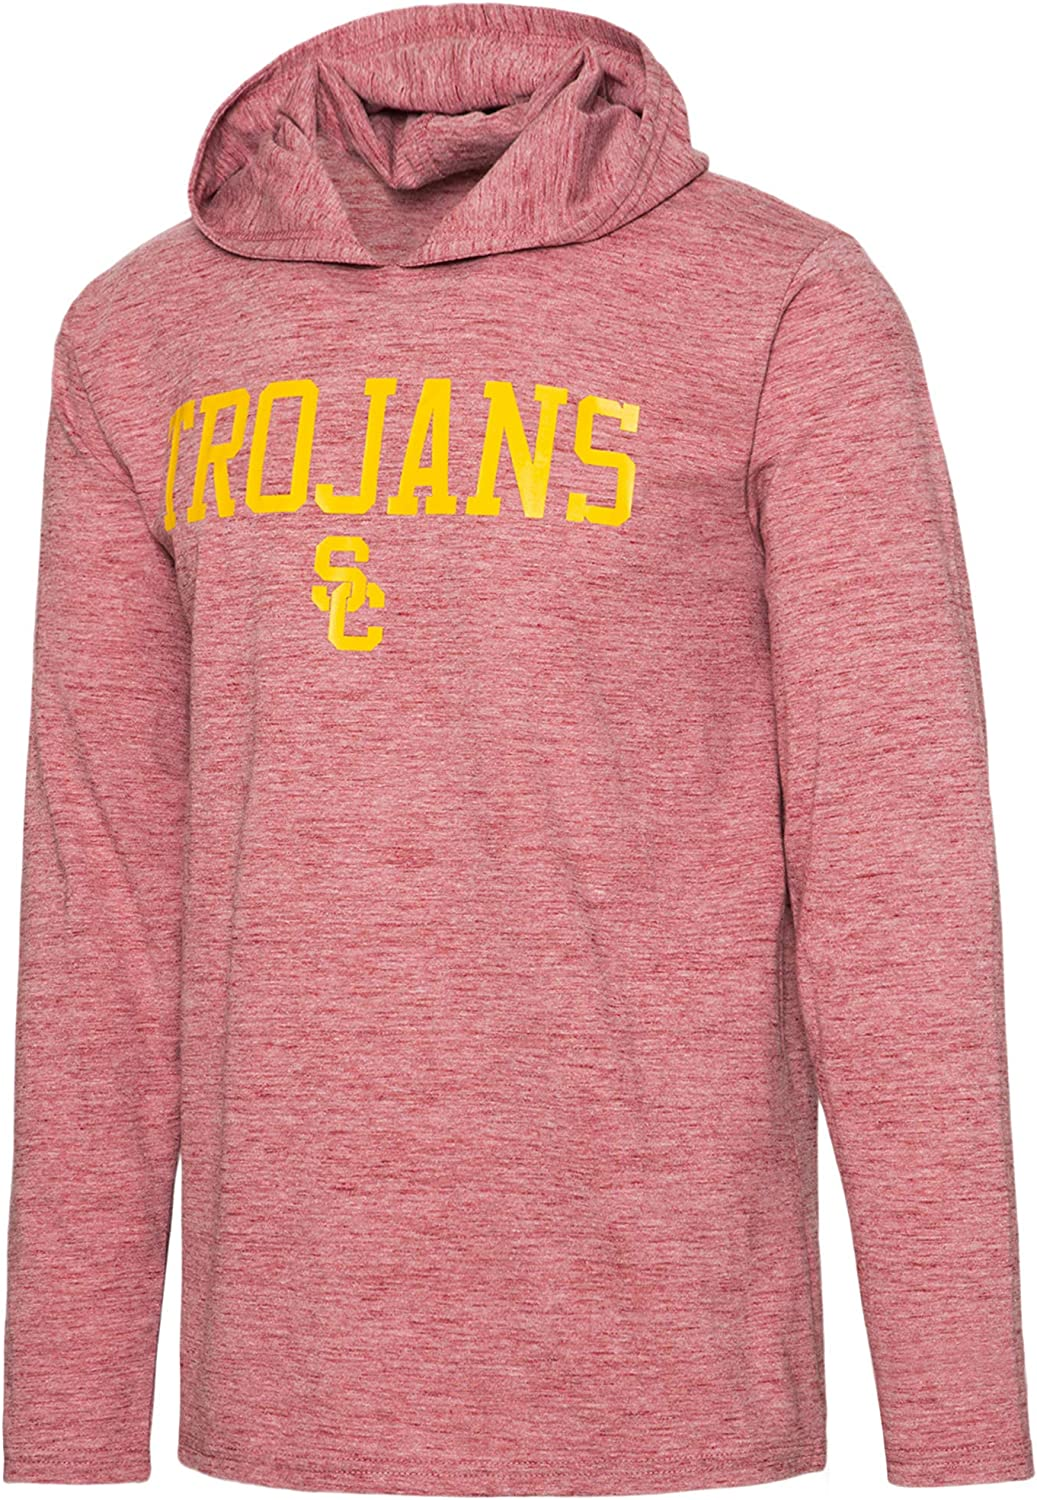 University of Southern California Authentic Apparel Mens University of Southern California Zophar Hooded T-Shirt